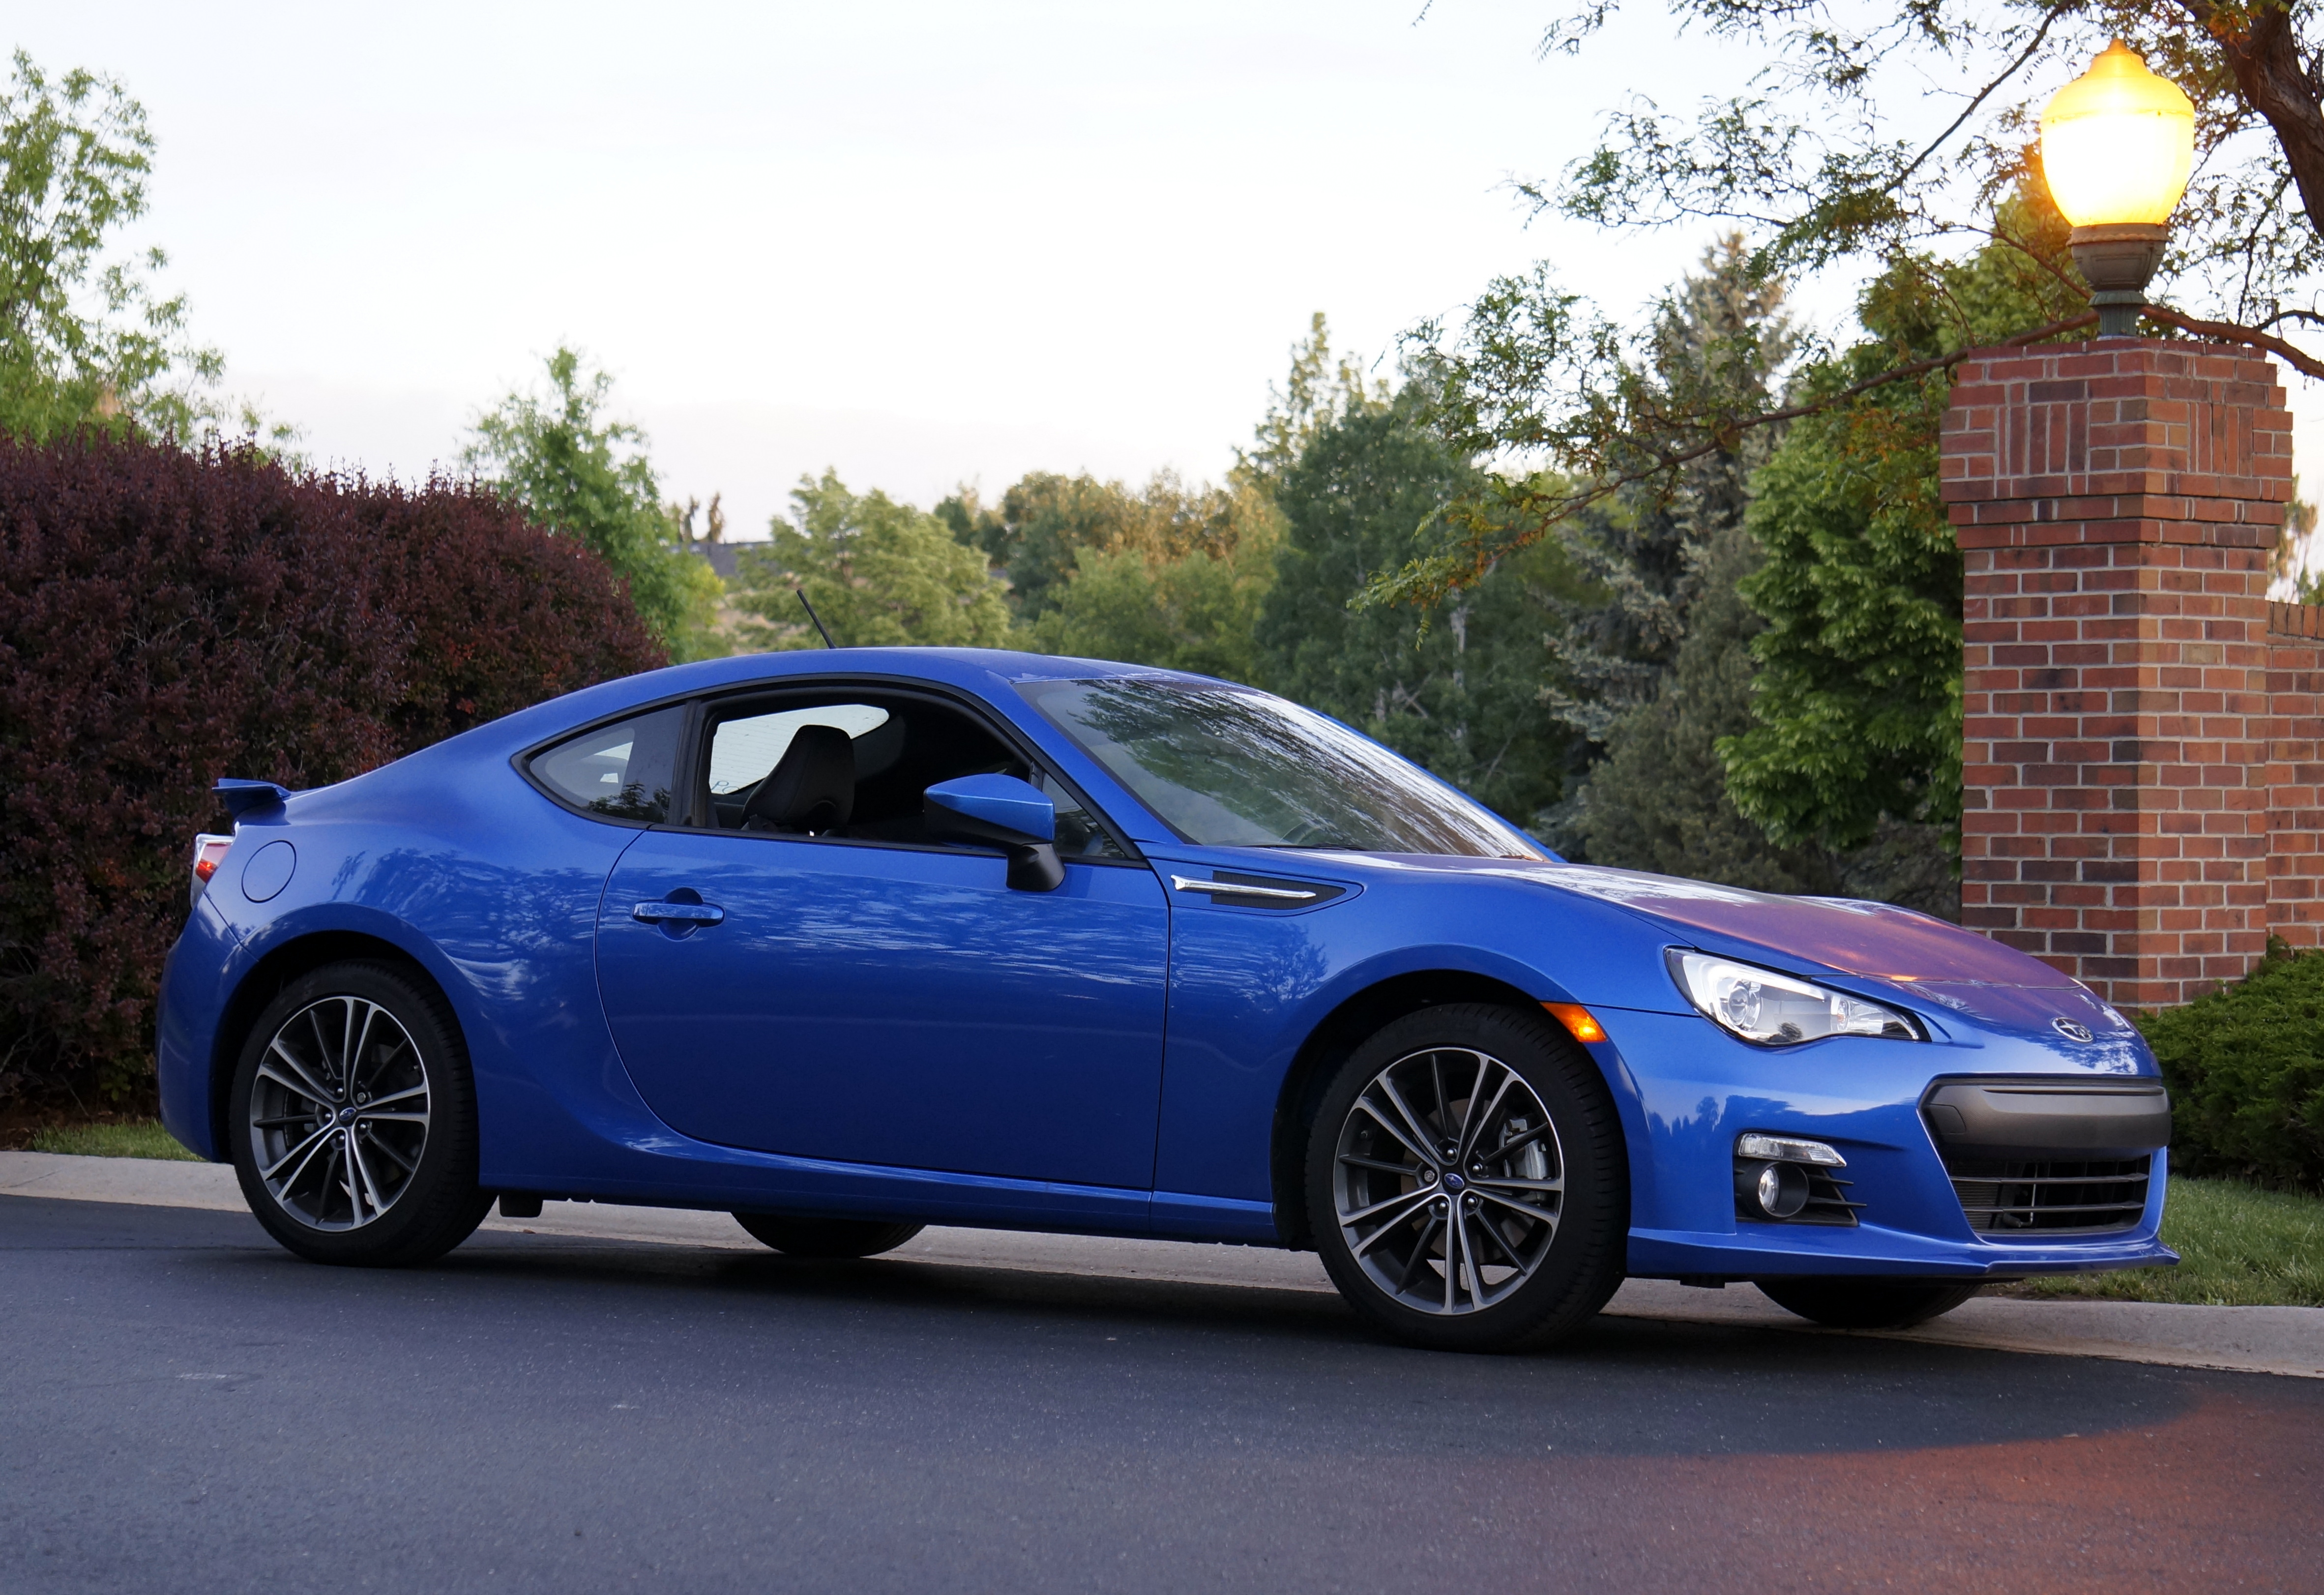 greeley subaru blog on 2014 subaru brz limited review by stu wright in greeley colorado. Black Bedroom Furniture Sets. Home Design Ideas